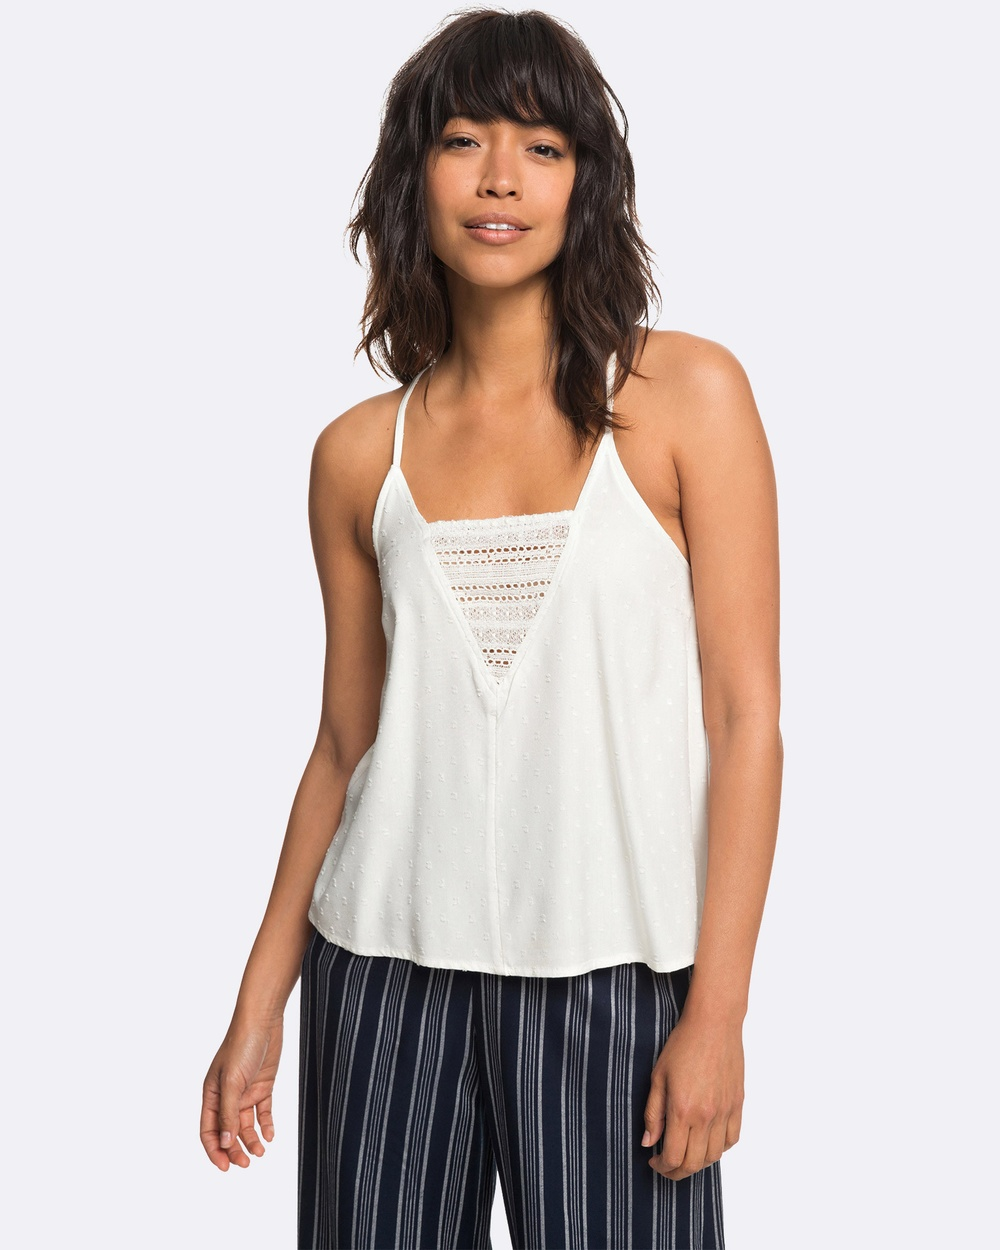 Roxy Womens Color Spaces Lace Insert Strappy Top Tops MARSHMALLOW Womens Color Spaces Lace Insert Strappy Top